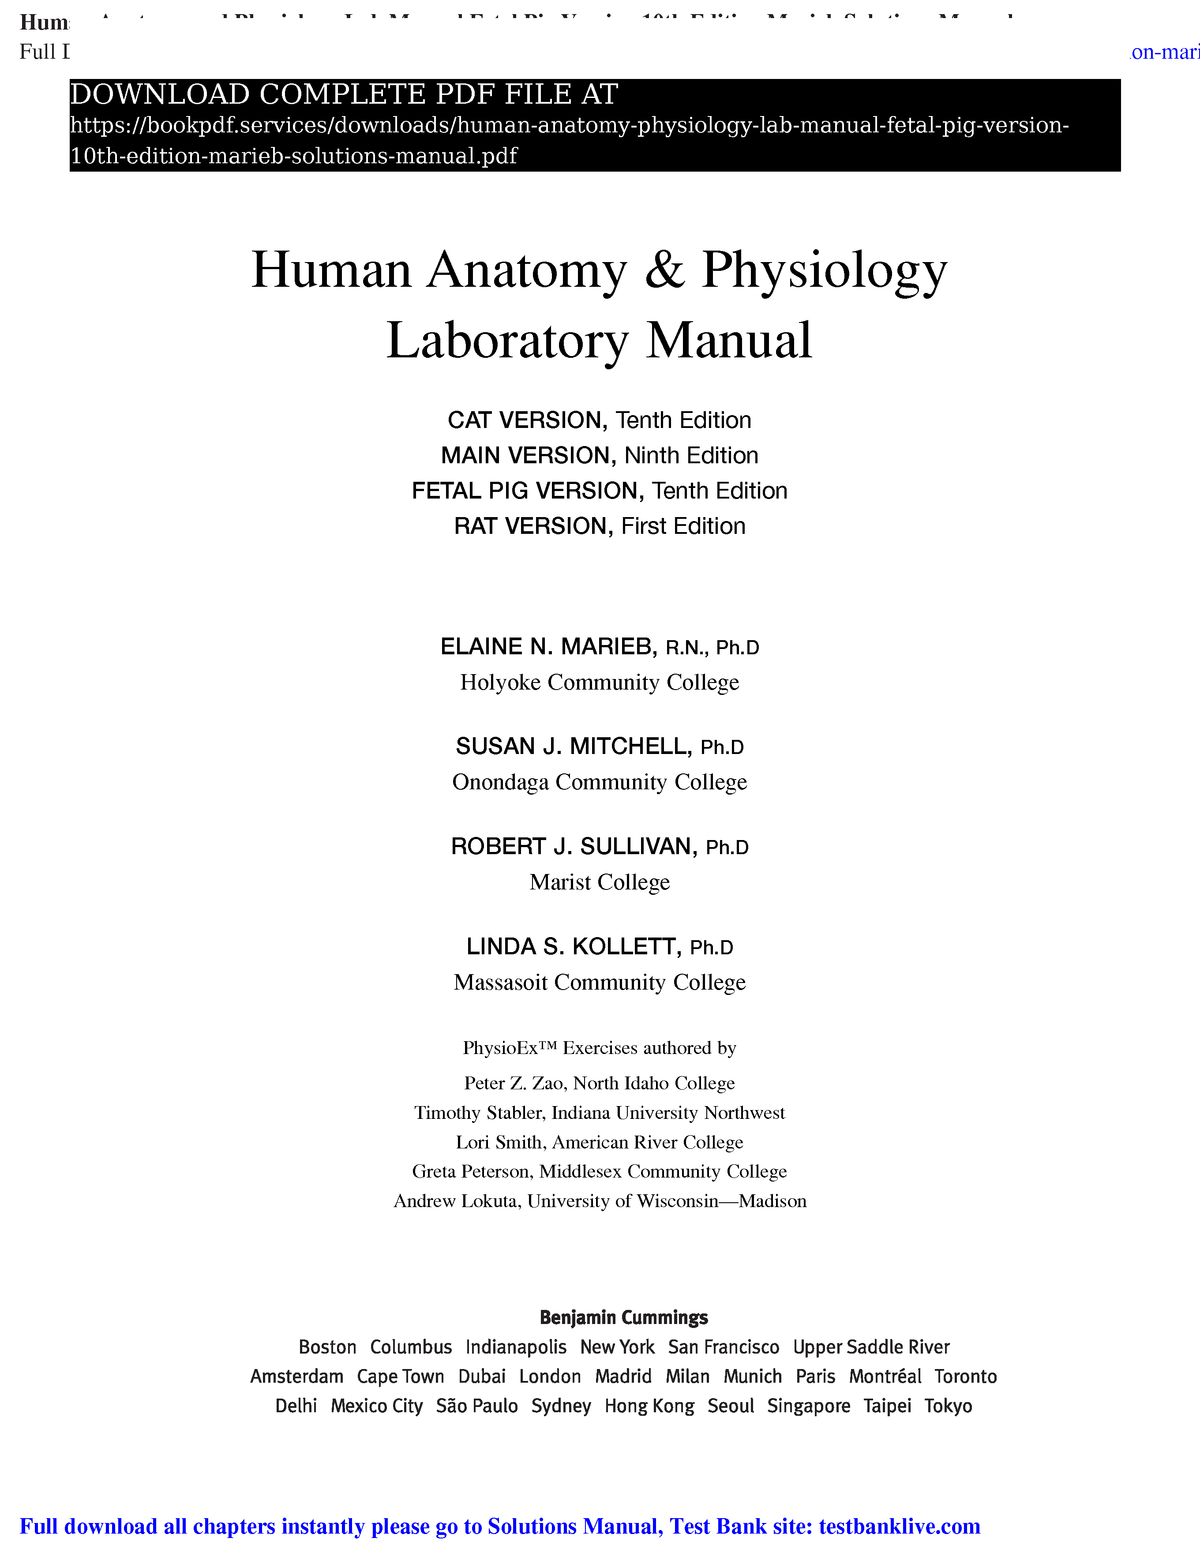 anatomy and physiology solution manual